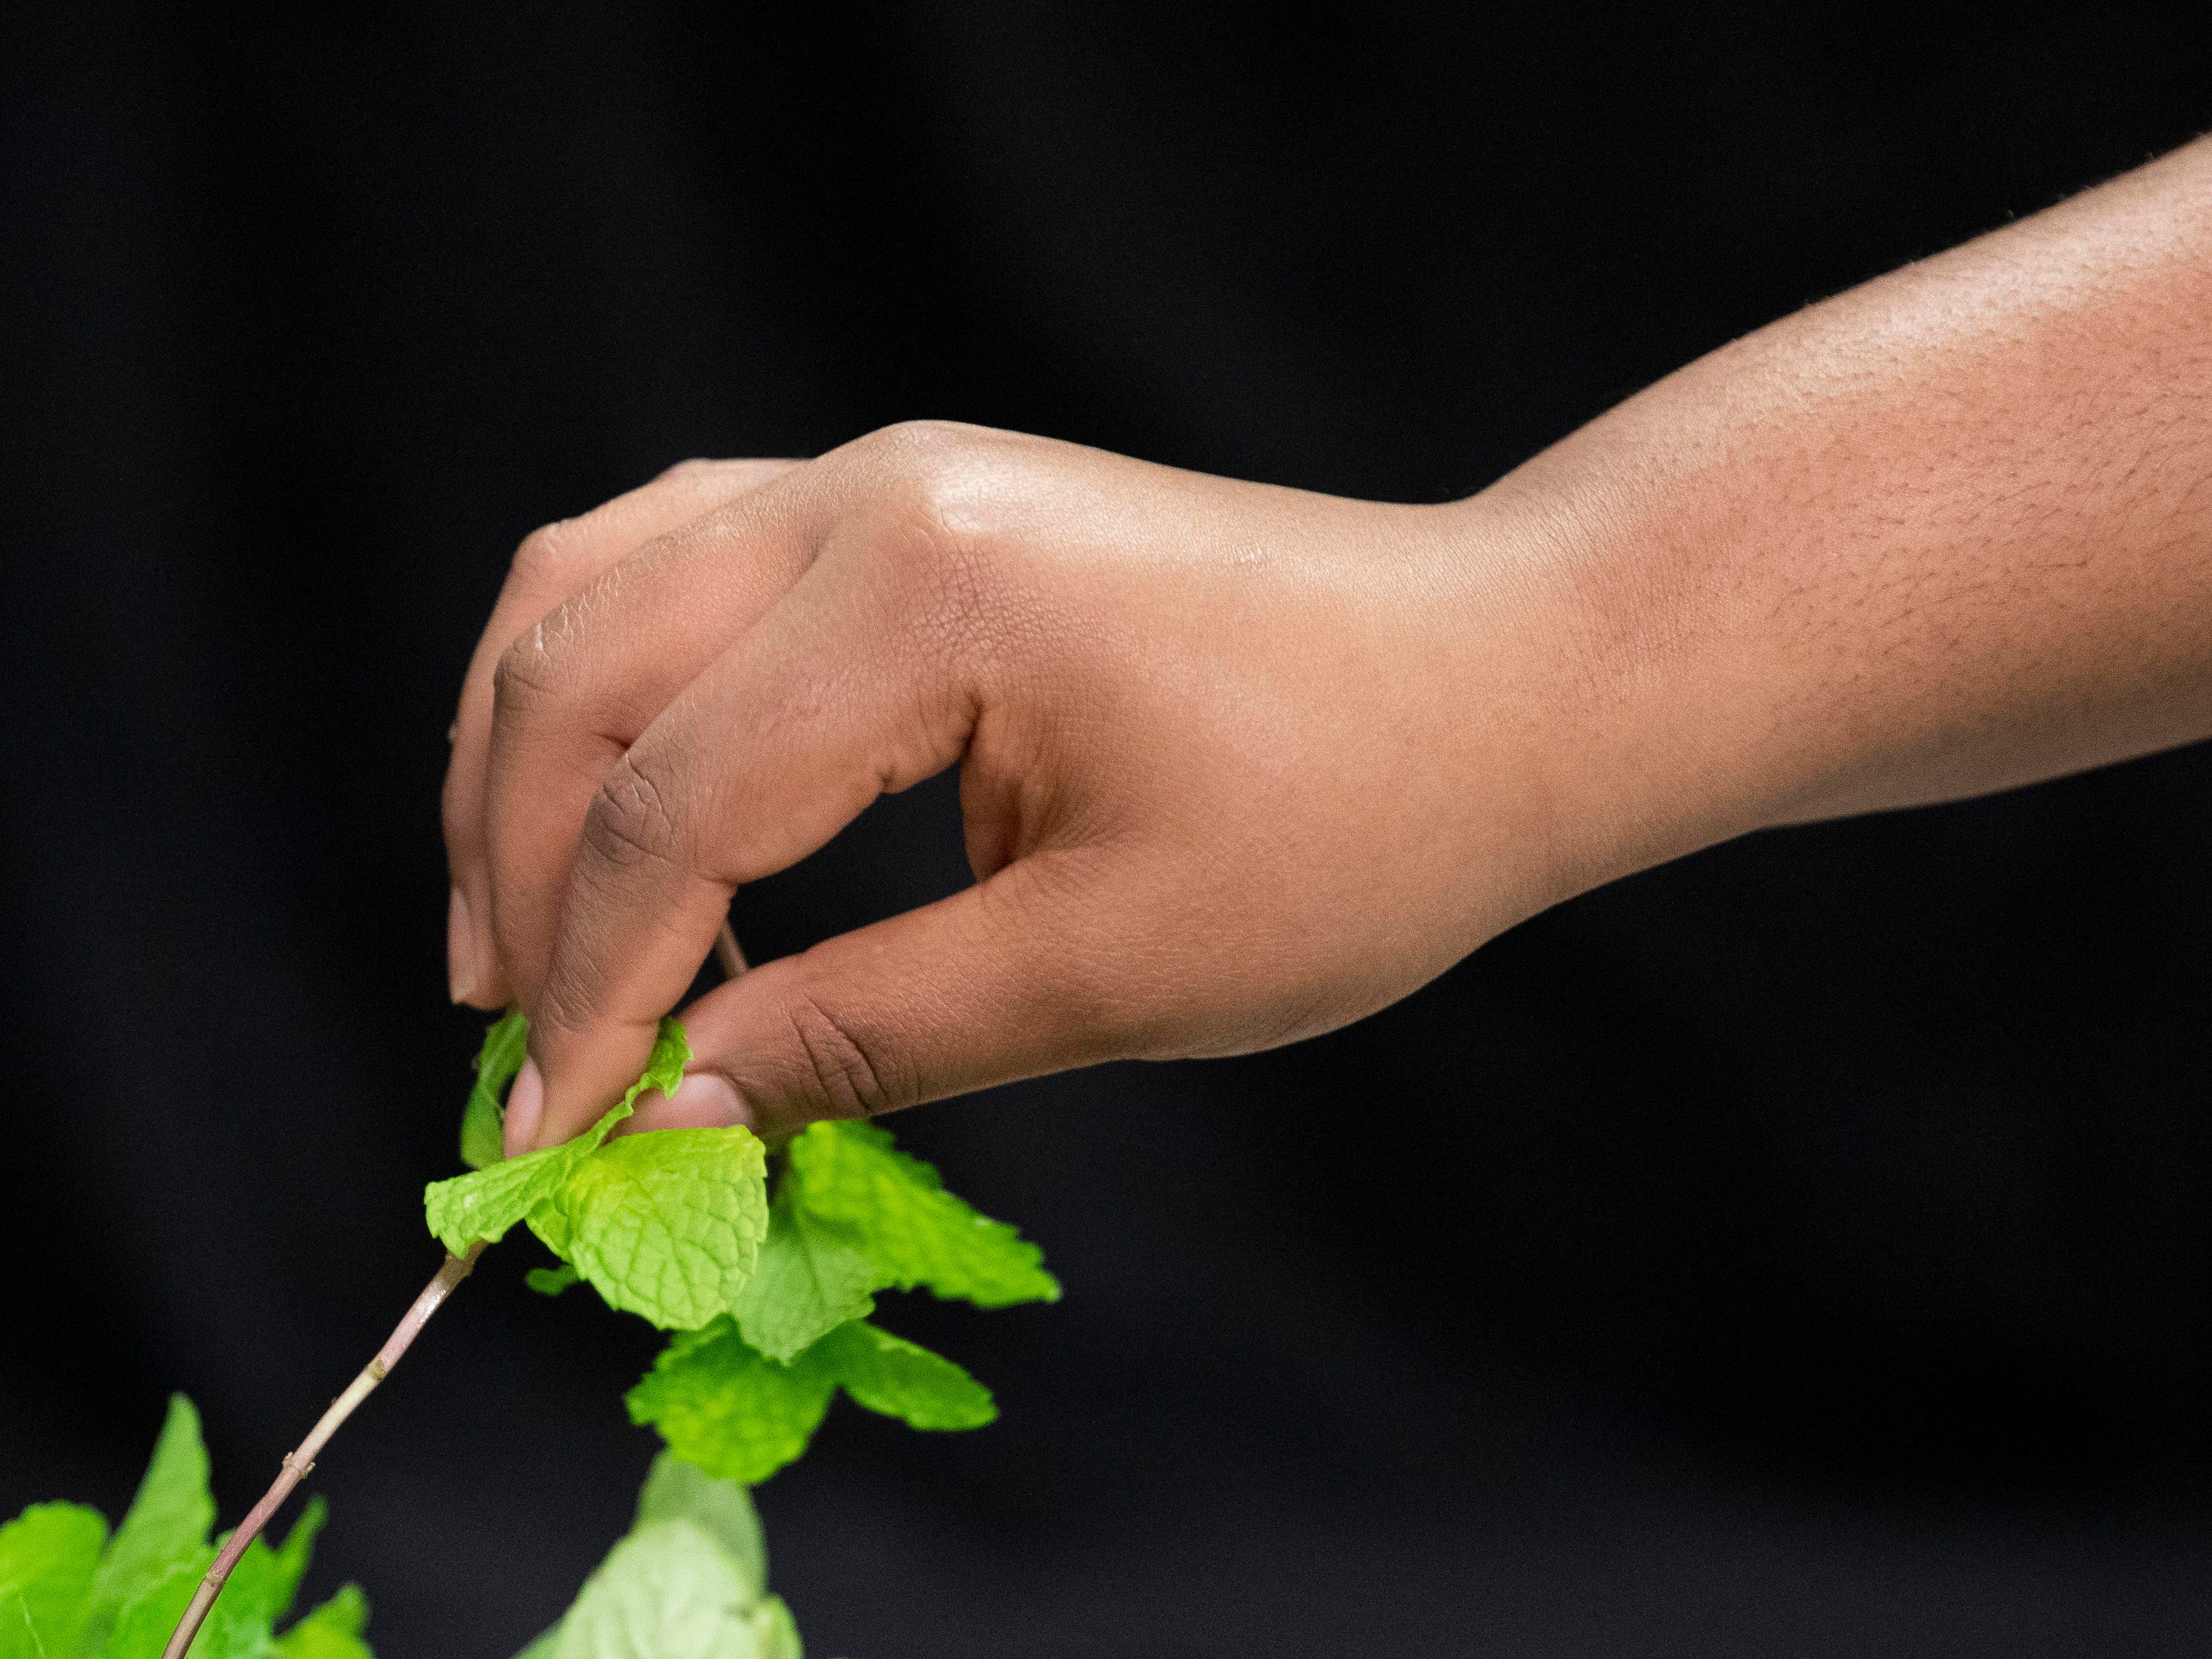 Charisma Daniels, 14, of Stuart picks mint to add flavor to her sparkling water during a free, hands-on cooking class on Monday, Feb. 4, 2019, at the 10th Street Community Center in Stuart. Daniels learned how to rub the leaves to release the oils and scent of the plant.